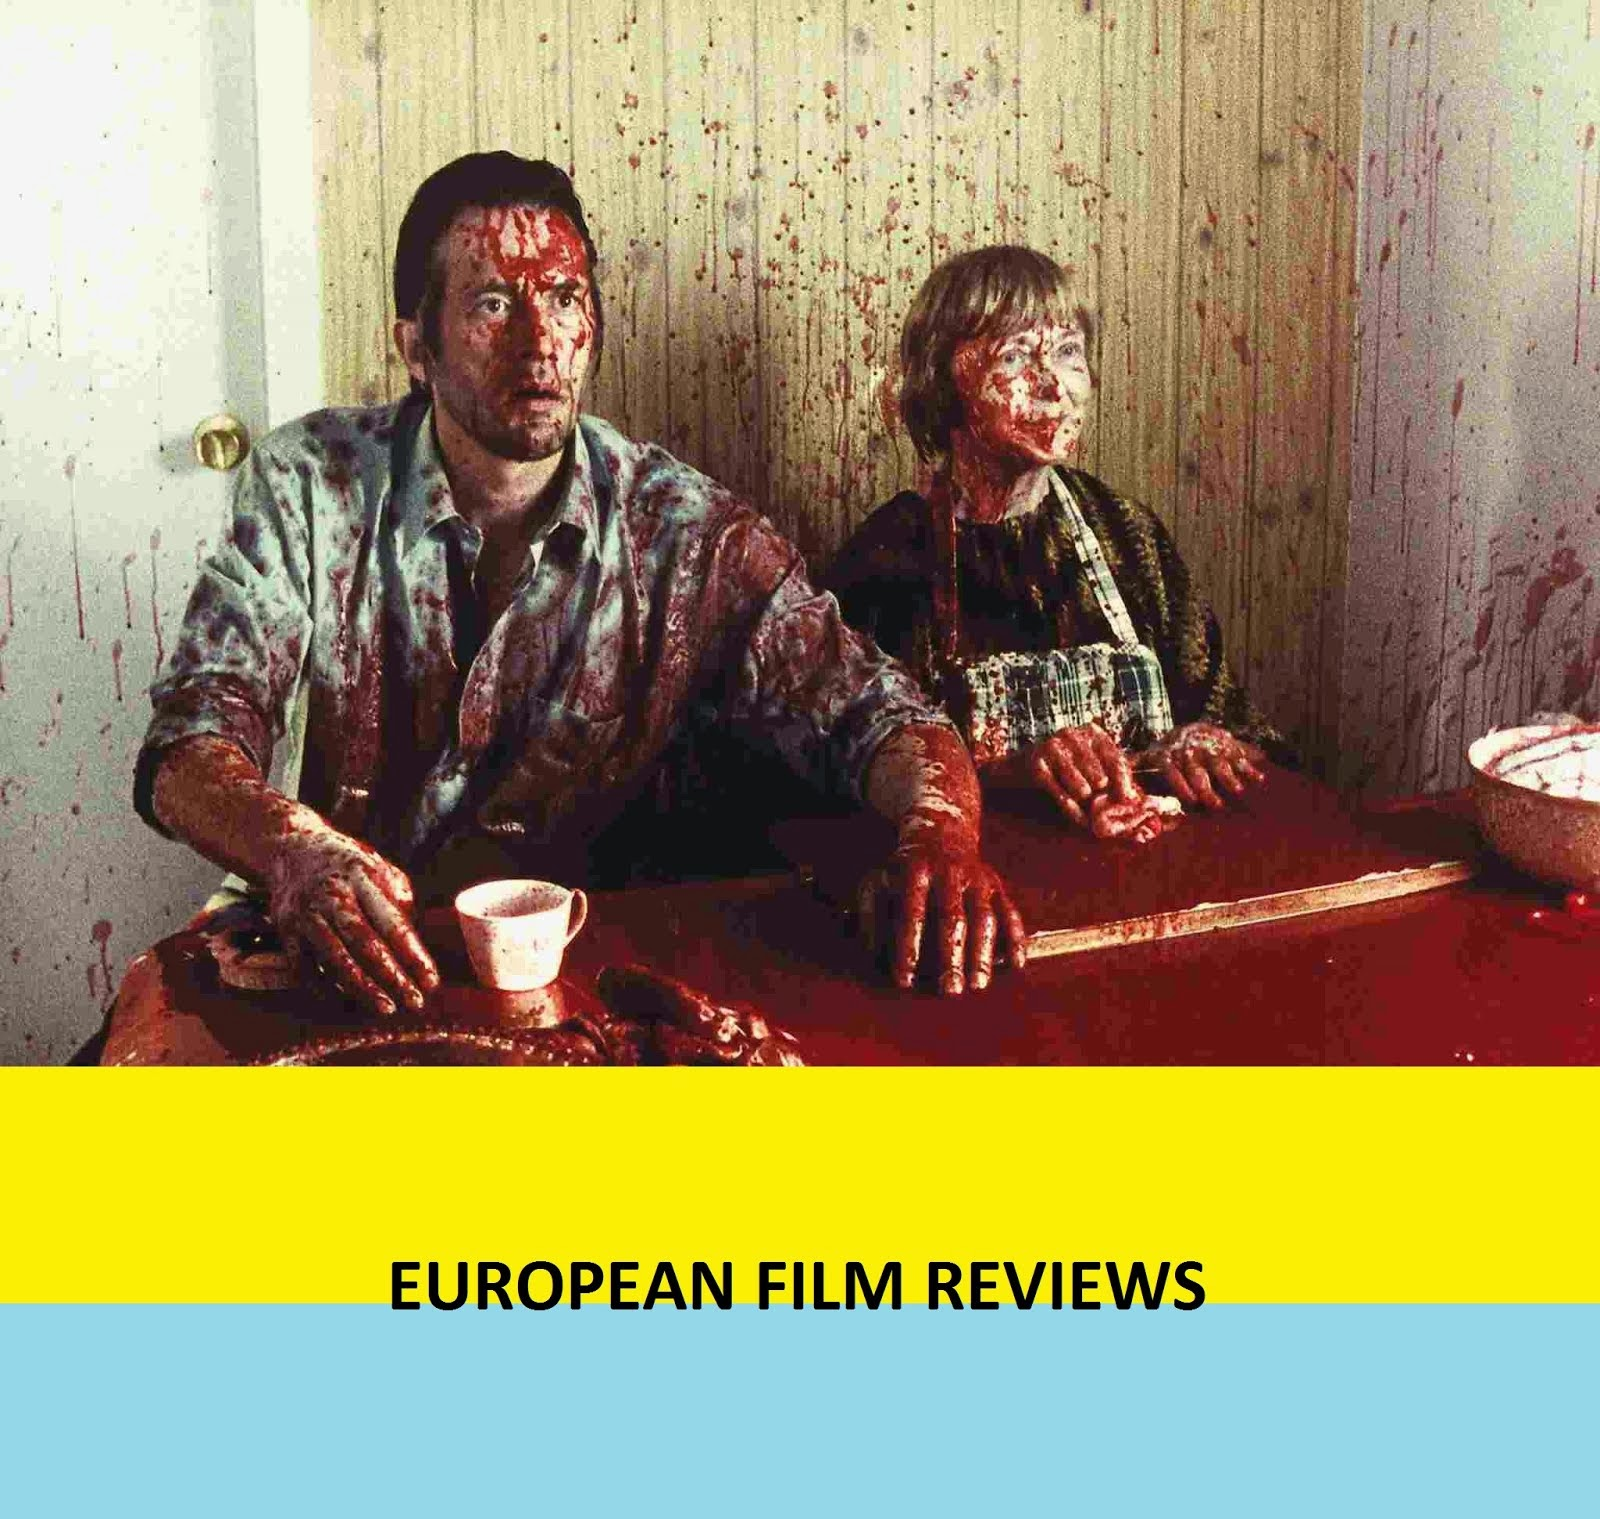 European Film Reviews